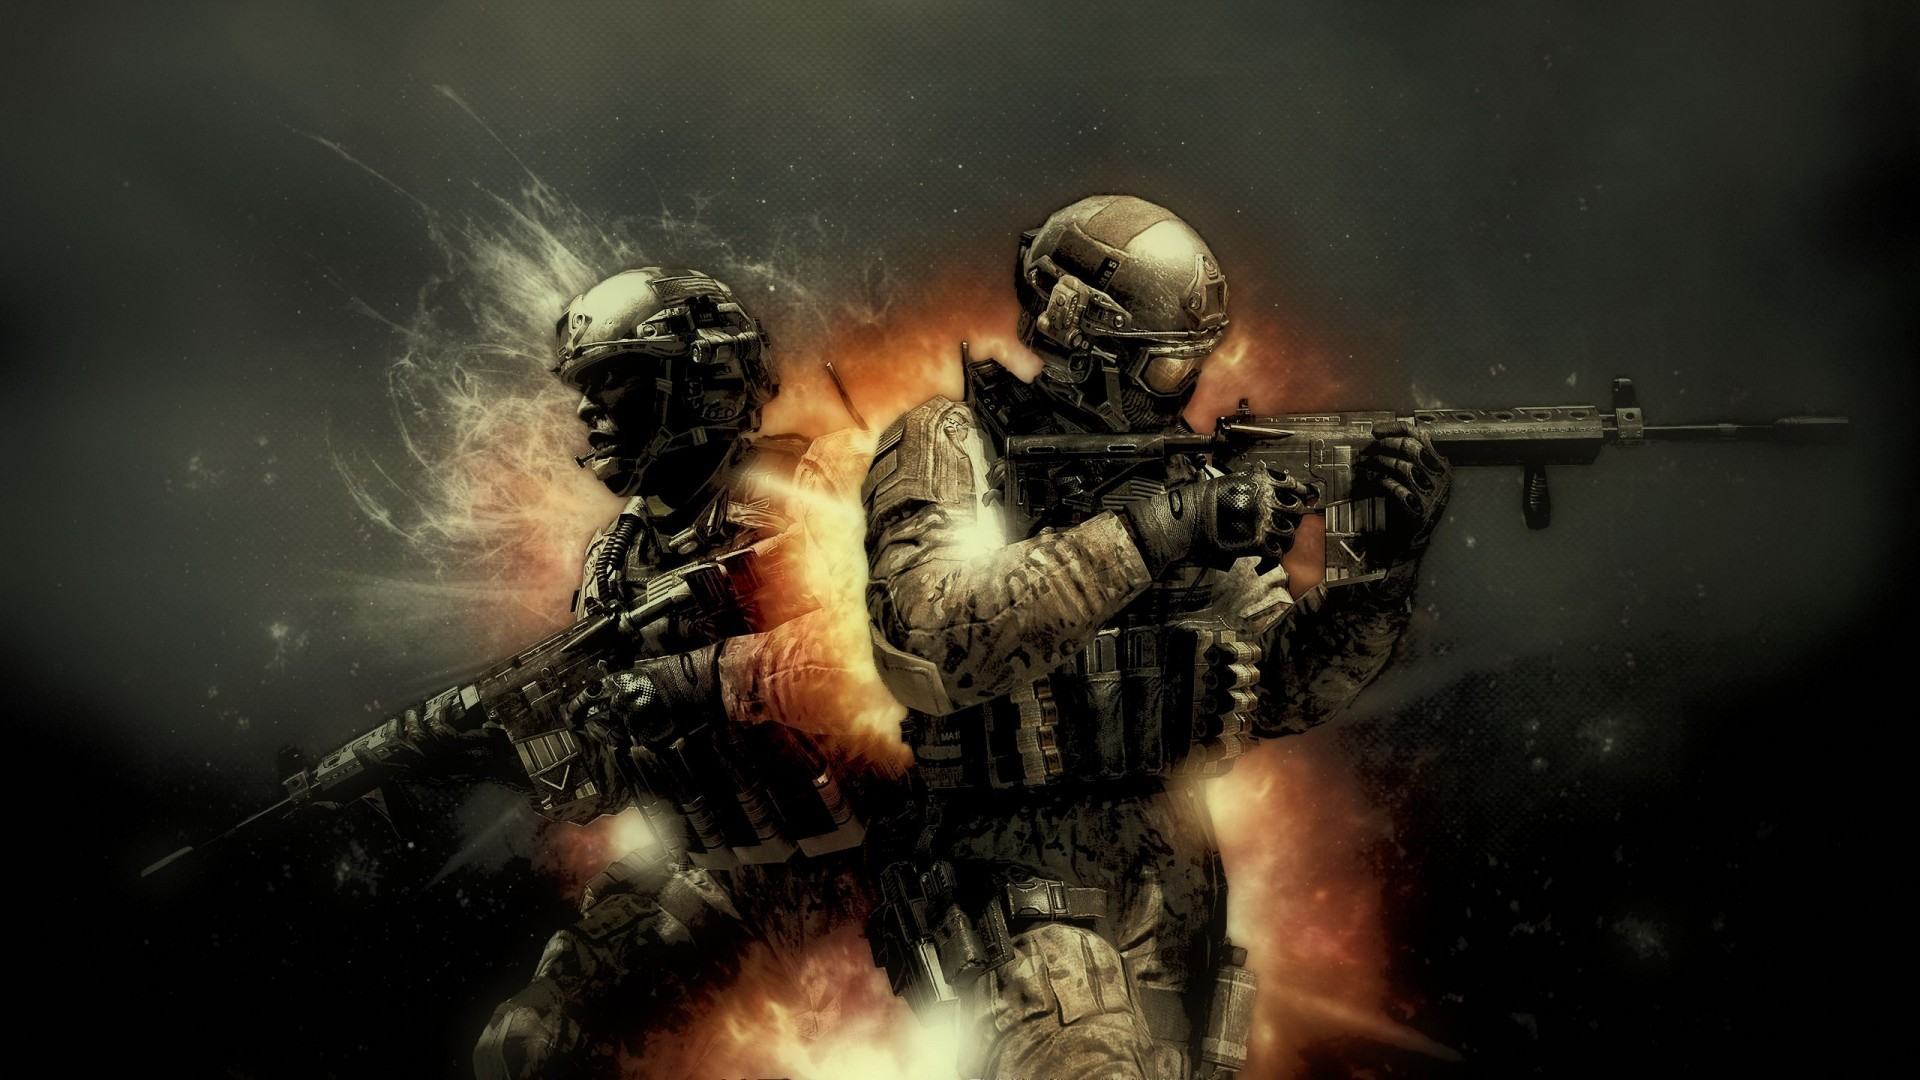 Call of Duty Wallpapers | Best Wallpapers